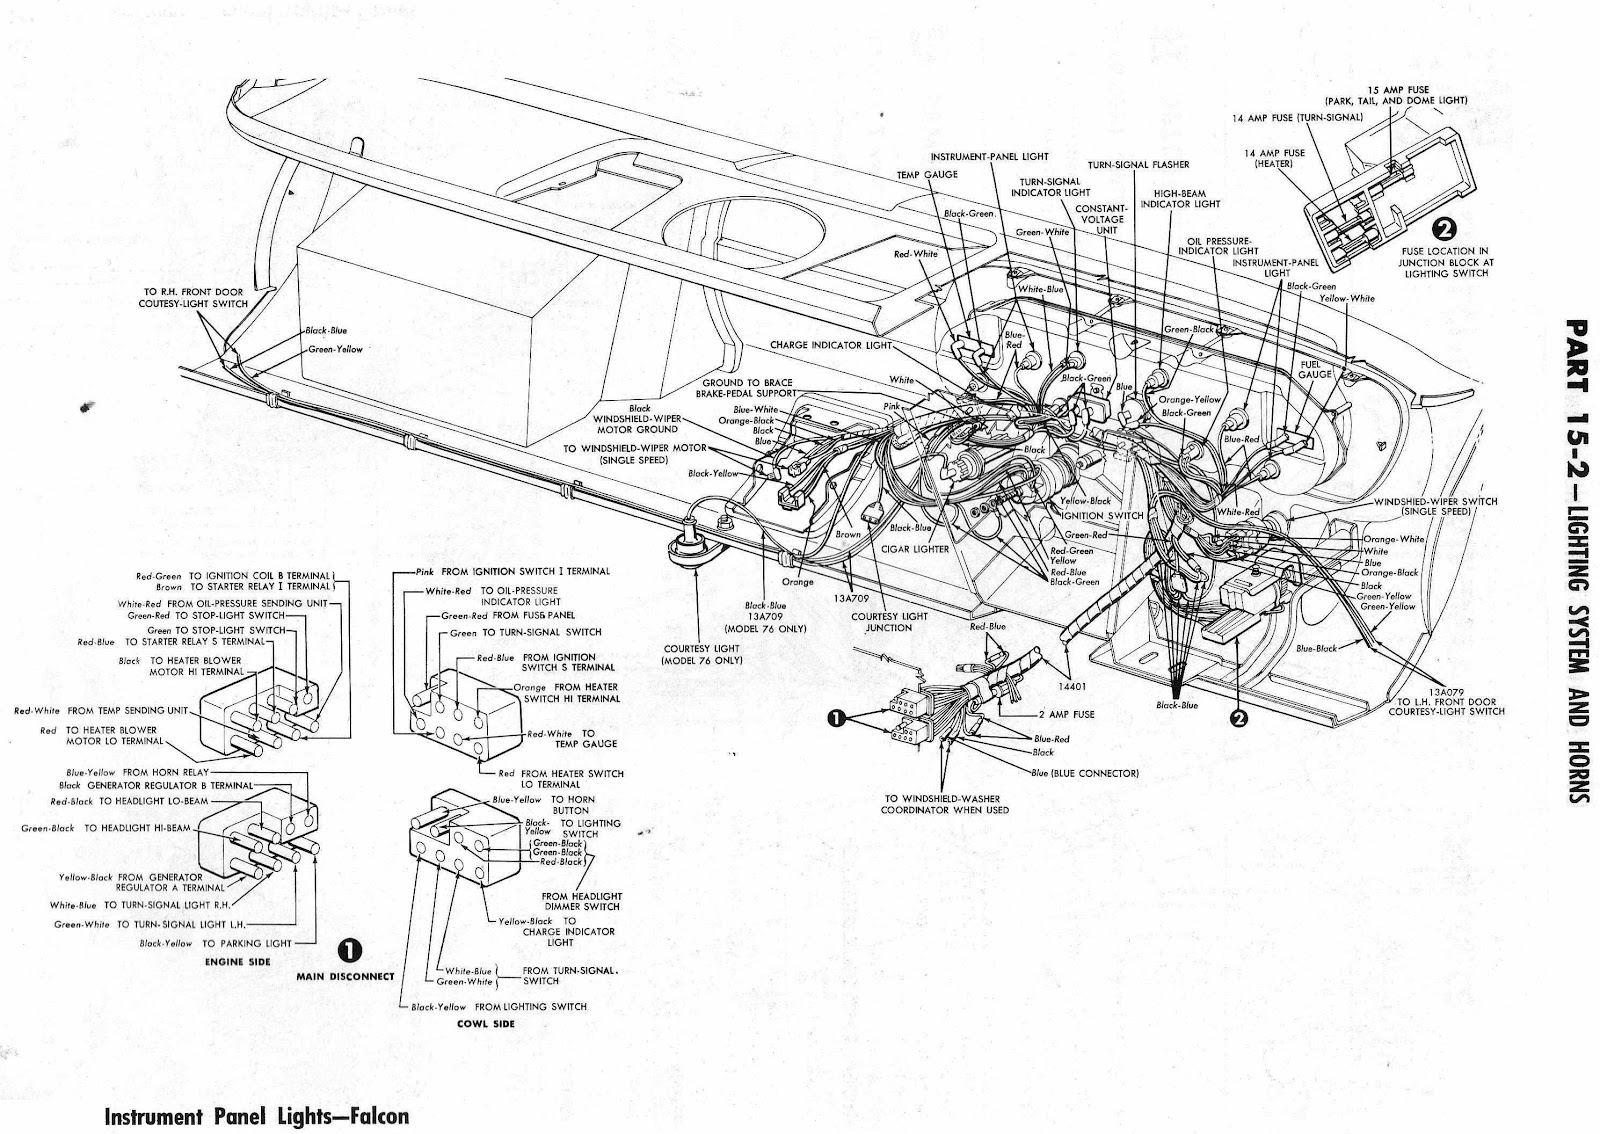 Lighting System And Horns Wiring Diagram Of 1964 Ford Falcon | #1